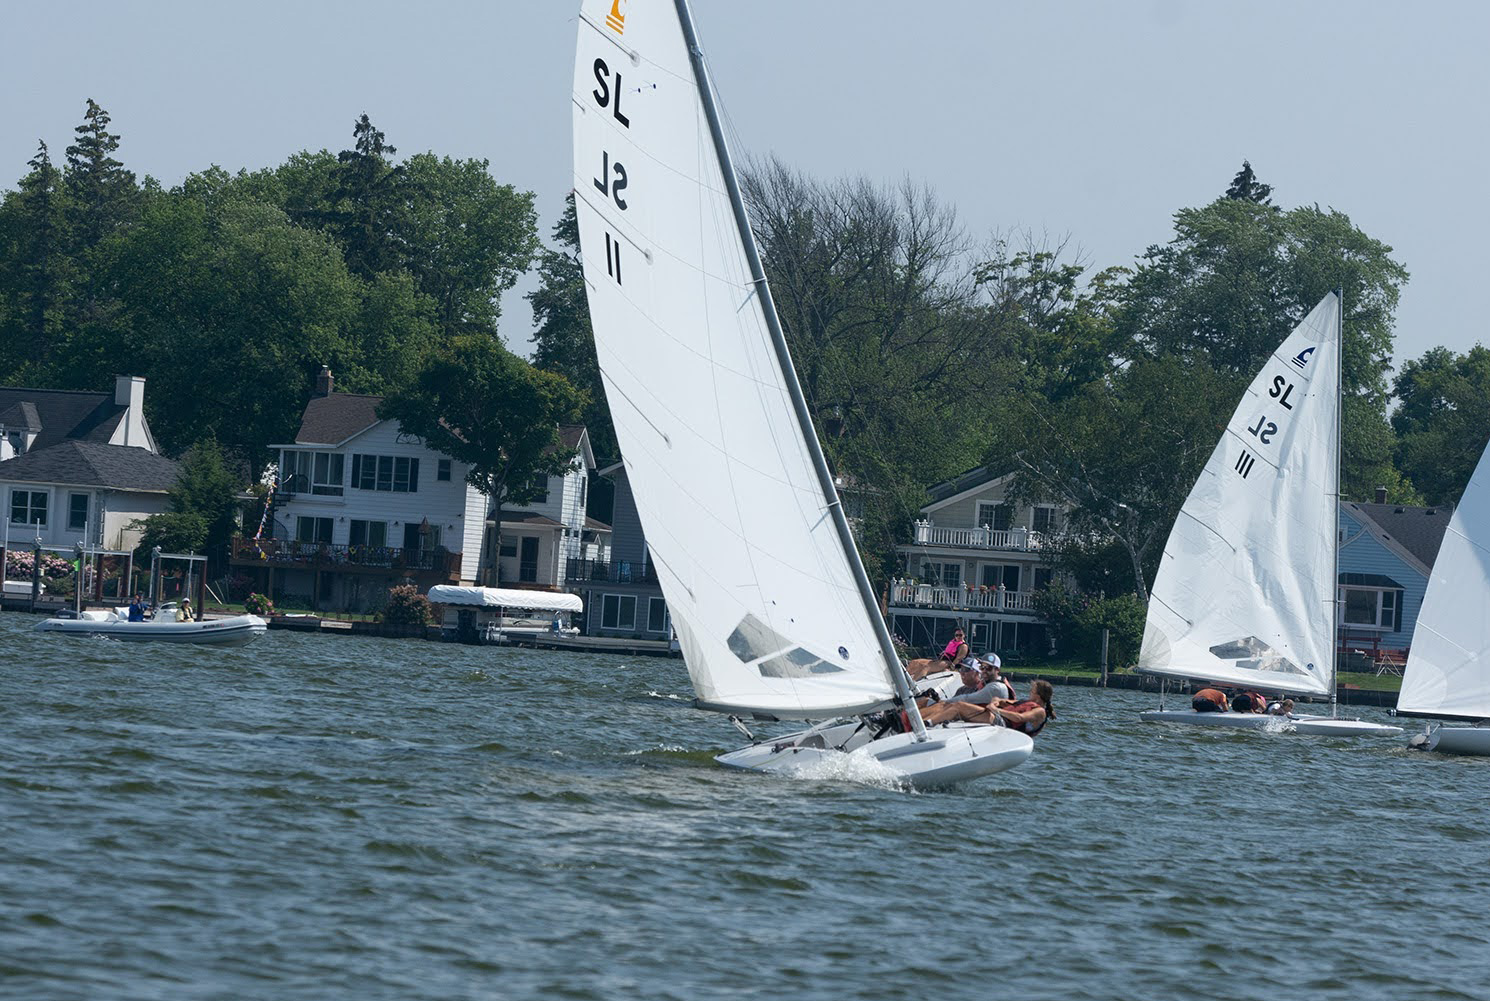 2021 C Scow National Champion powered by the North I-1 Gold mainsail